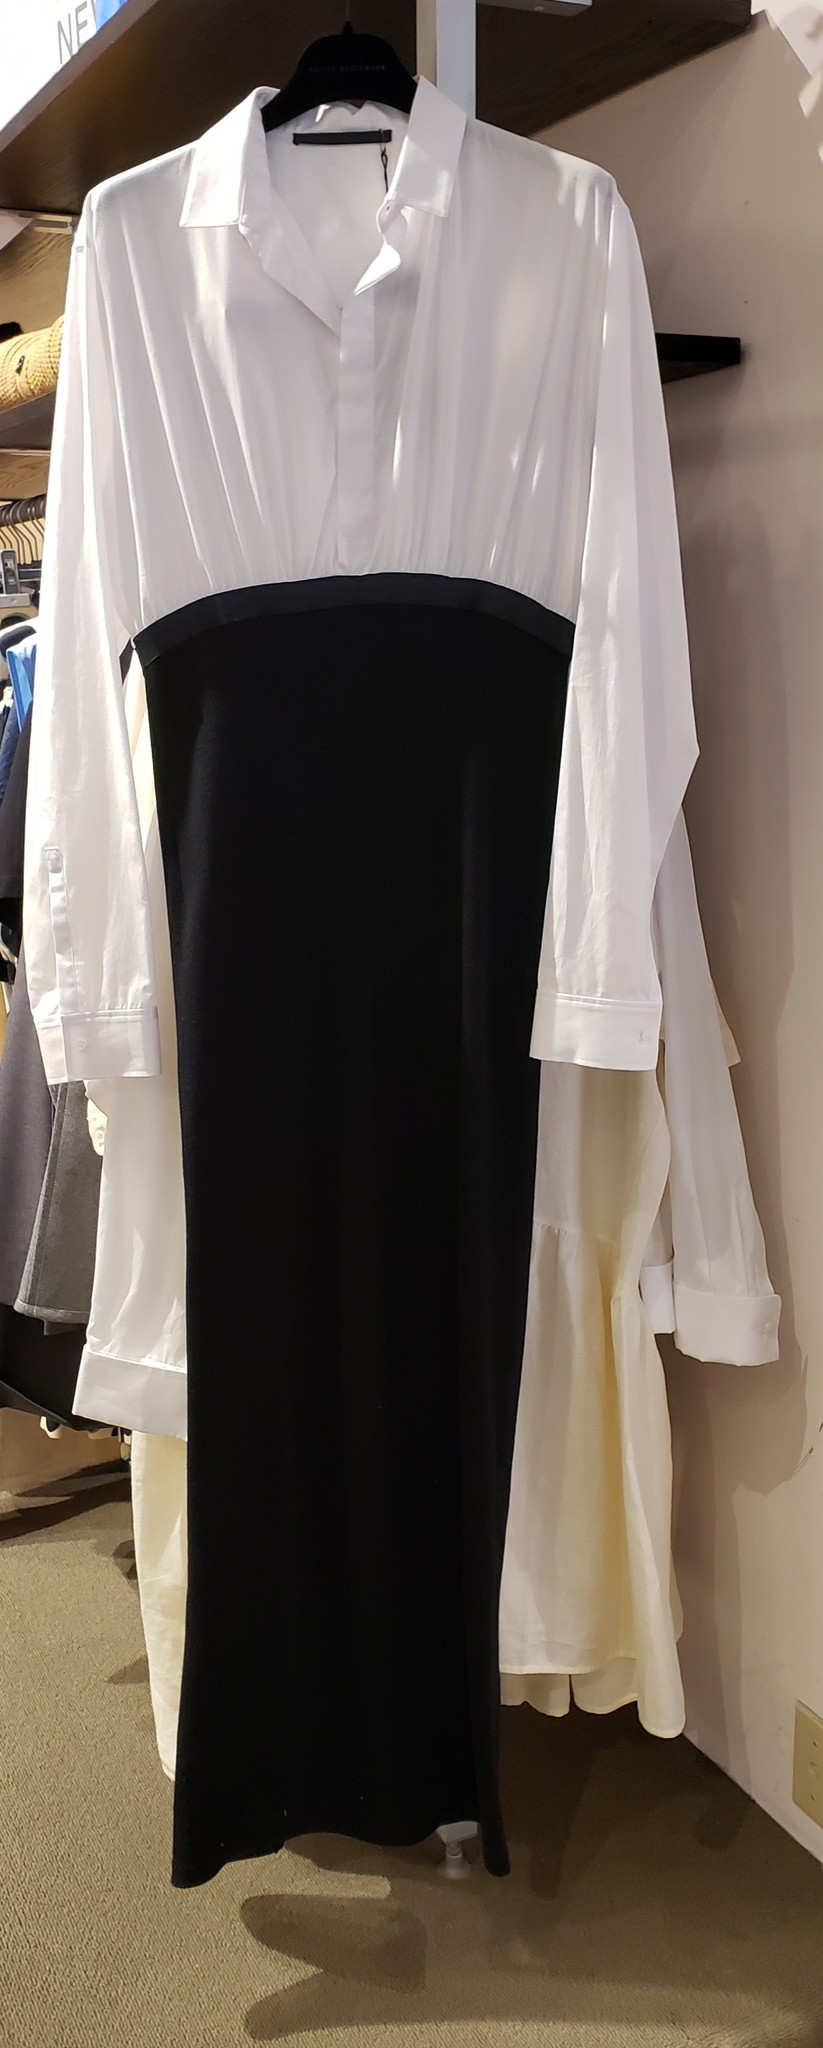 Dress - White/Blk - Sz. 42-1